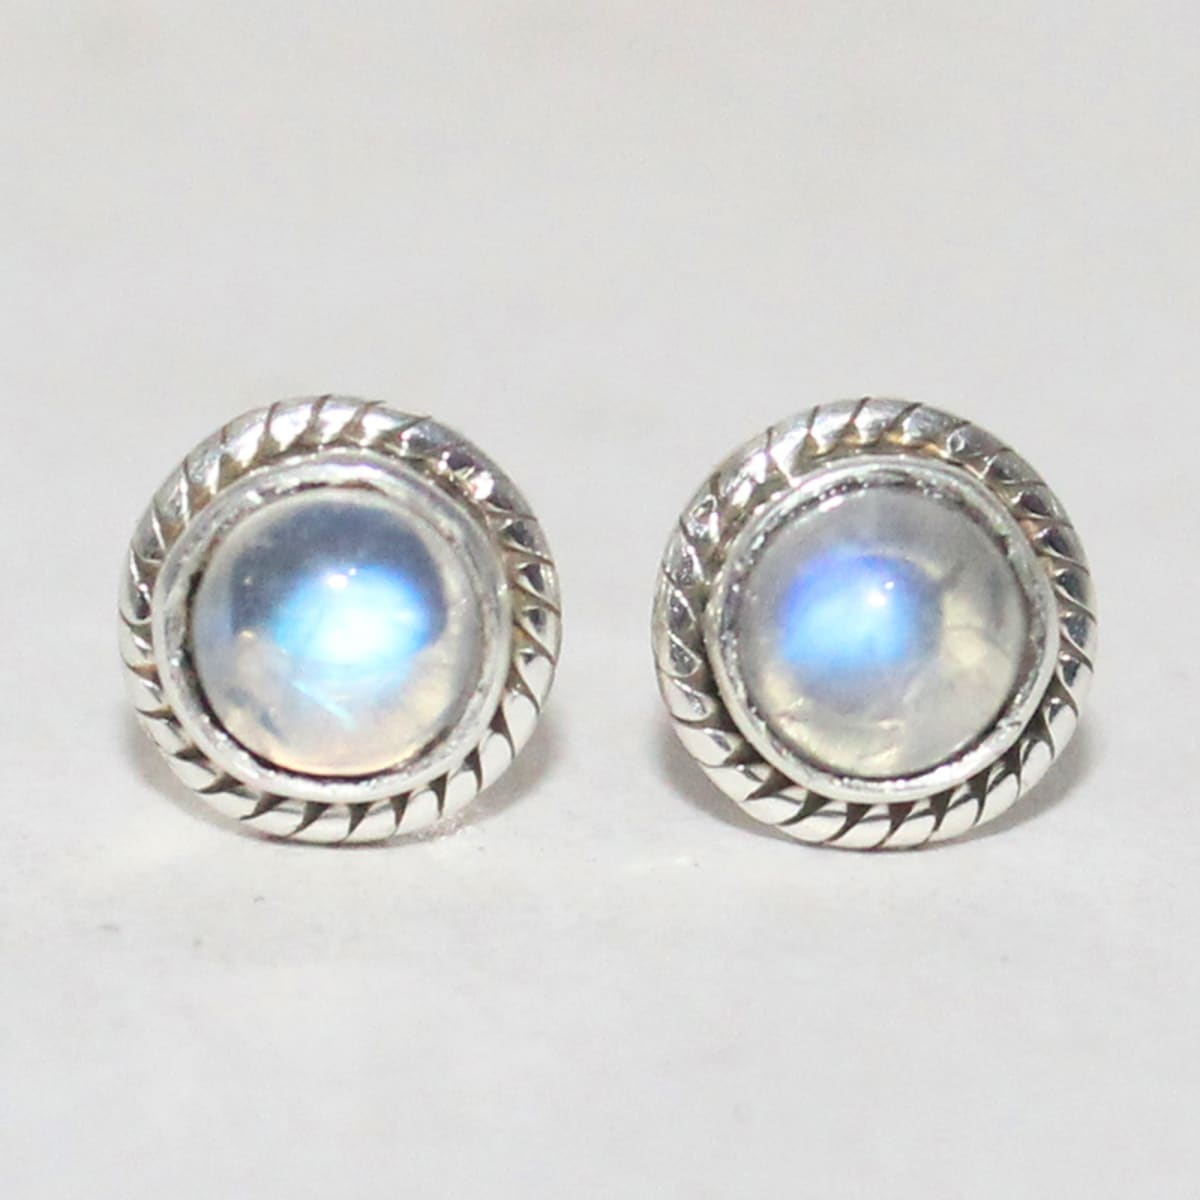 earrings Beautiful NATURAL BLUE FIRE RAINBOW MOONSTONE Gemstone Earrings Birthstone 925 Sterling Silver Fashion Handmade Jewelry Stud Gift -